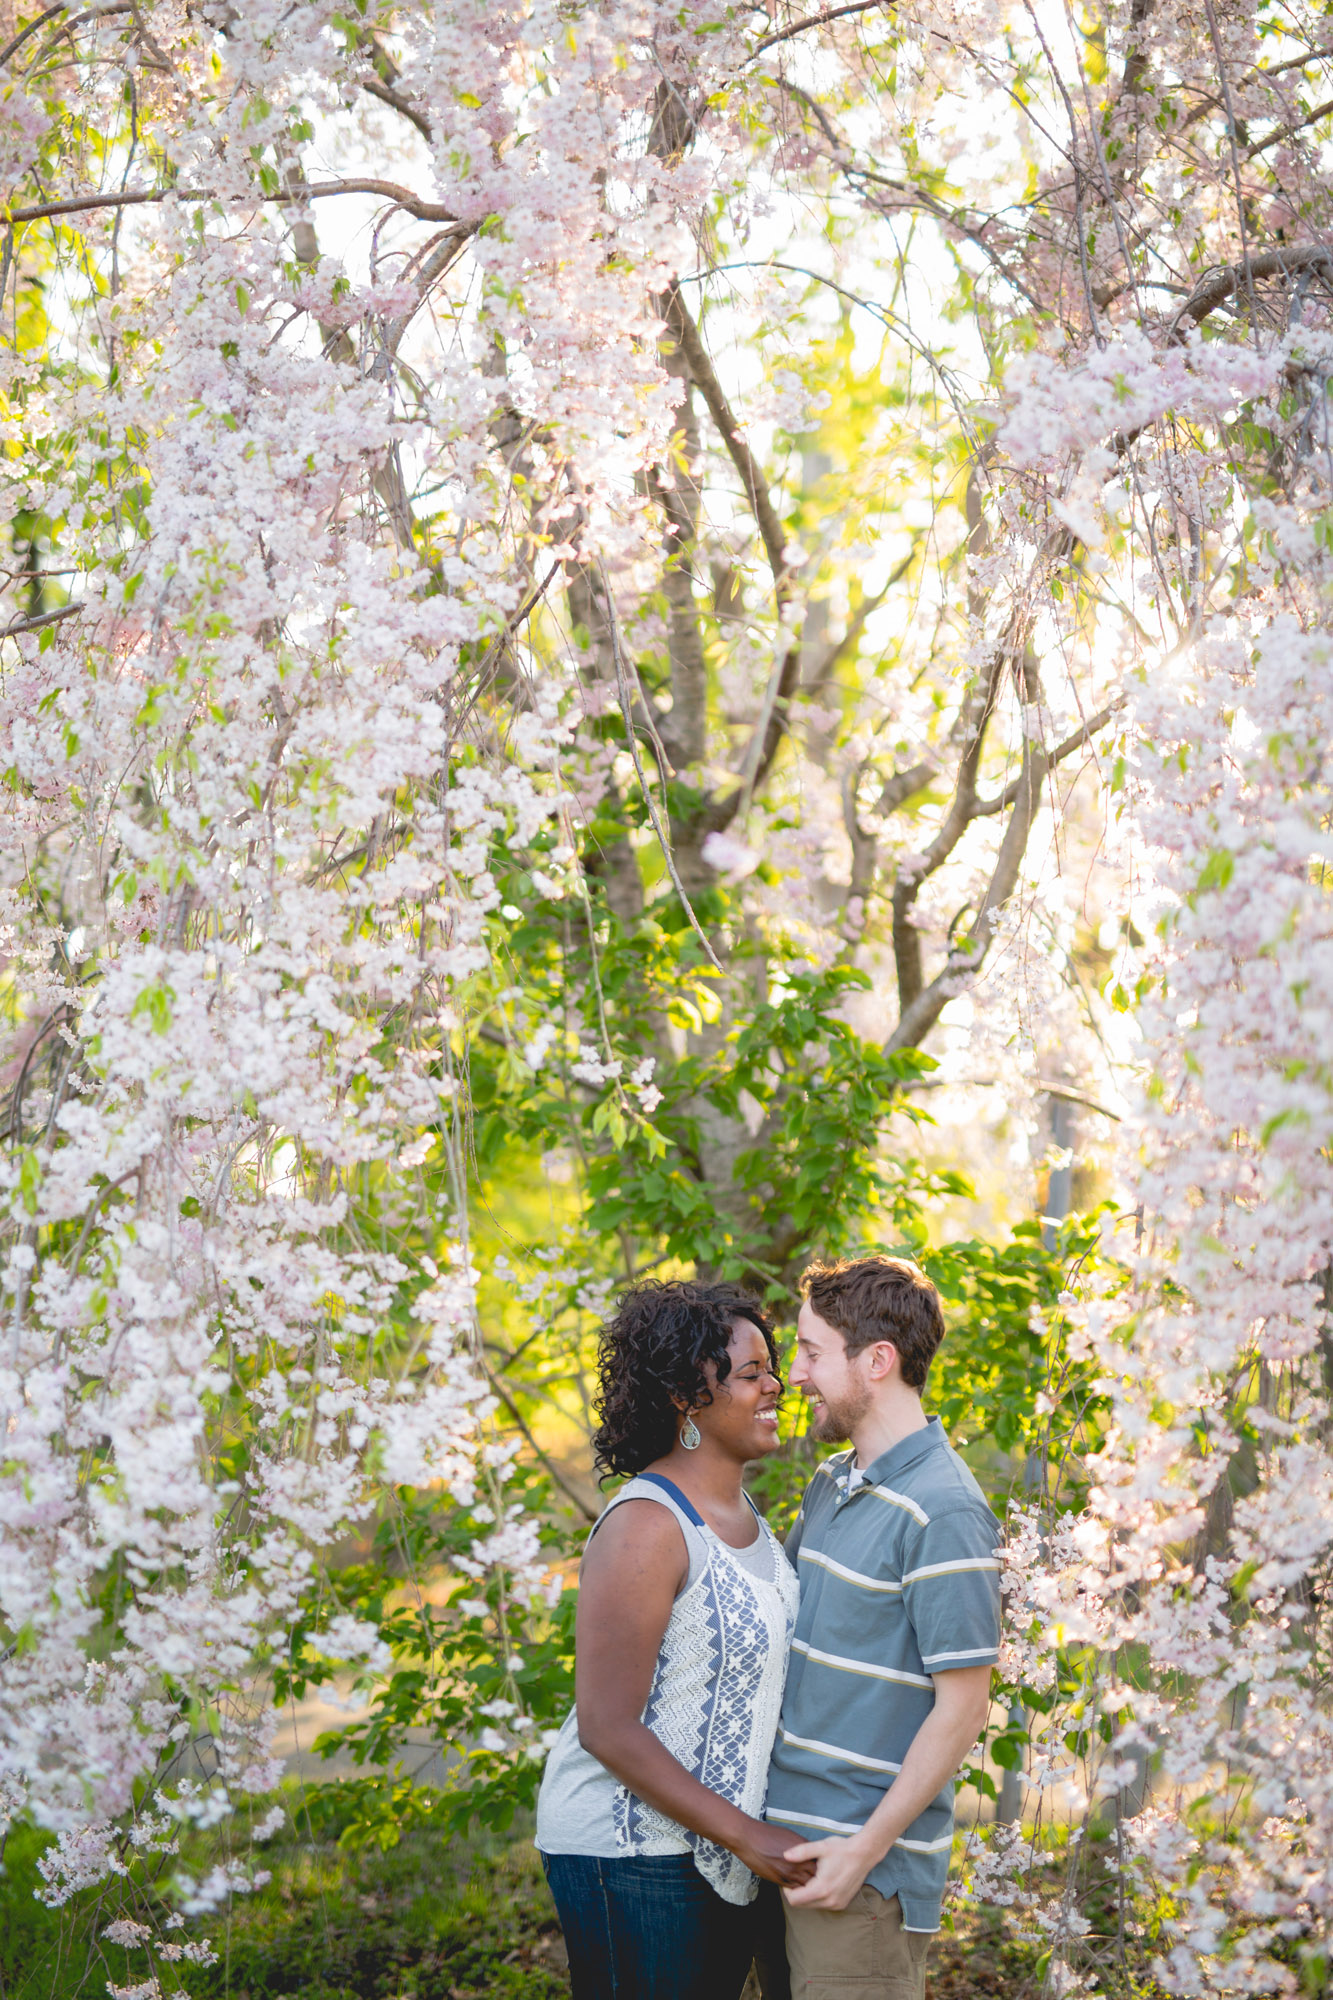 Quakertown Memorial Park Engagement Photos 11